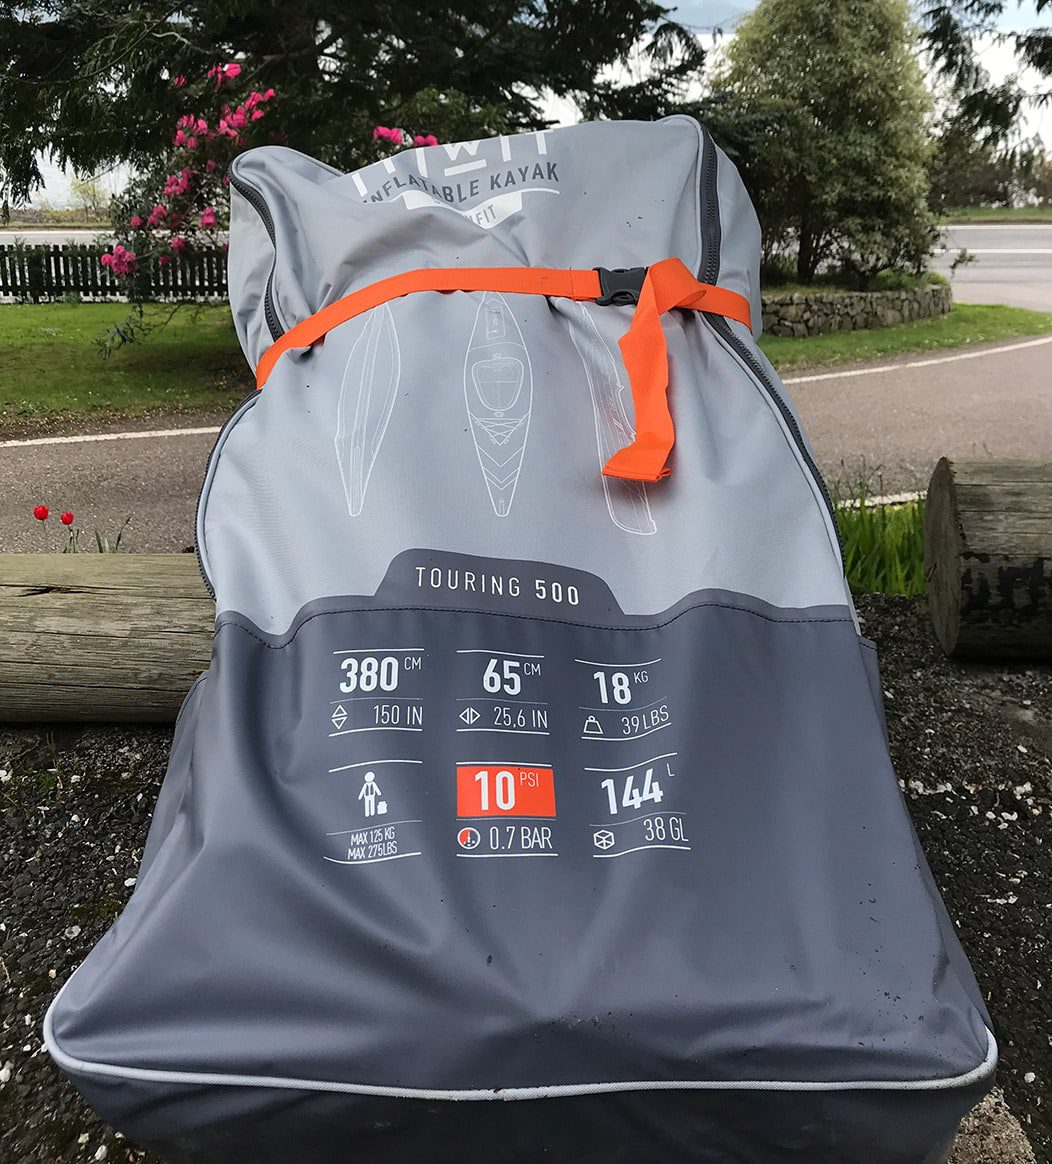 ITIWIT Strenfit X500 inflatable 1person kayak carry bag